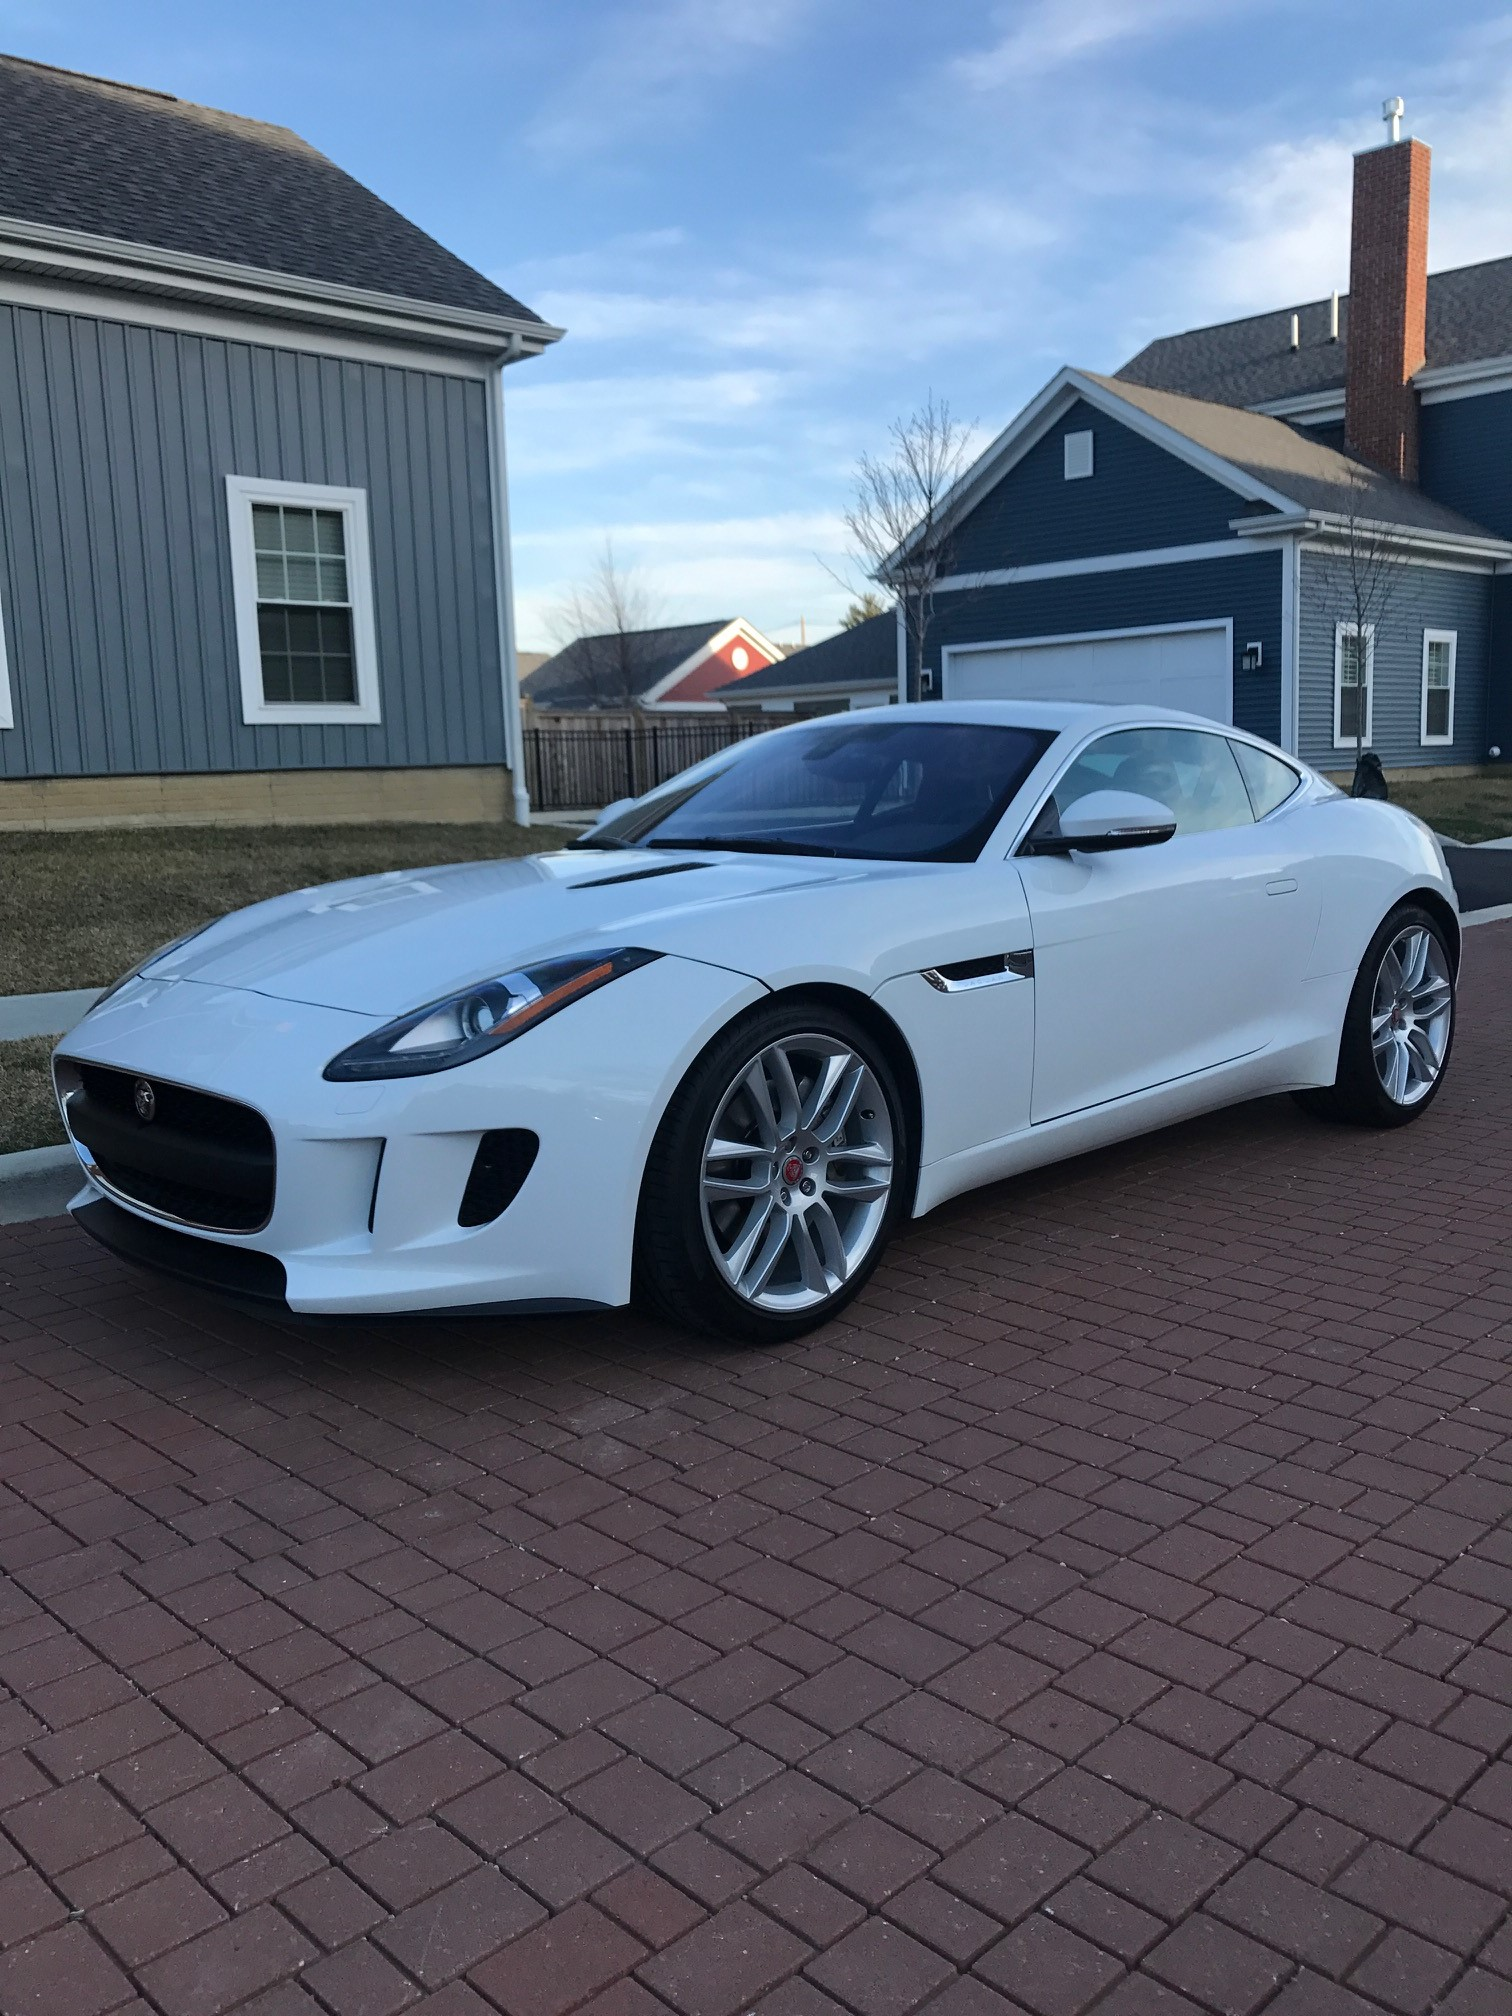 Lease Transfer Ohio 2017 Jaguar F Type 499 Mo Private Lease